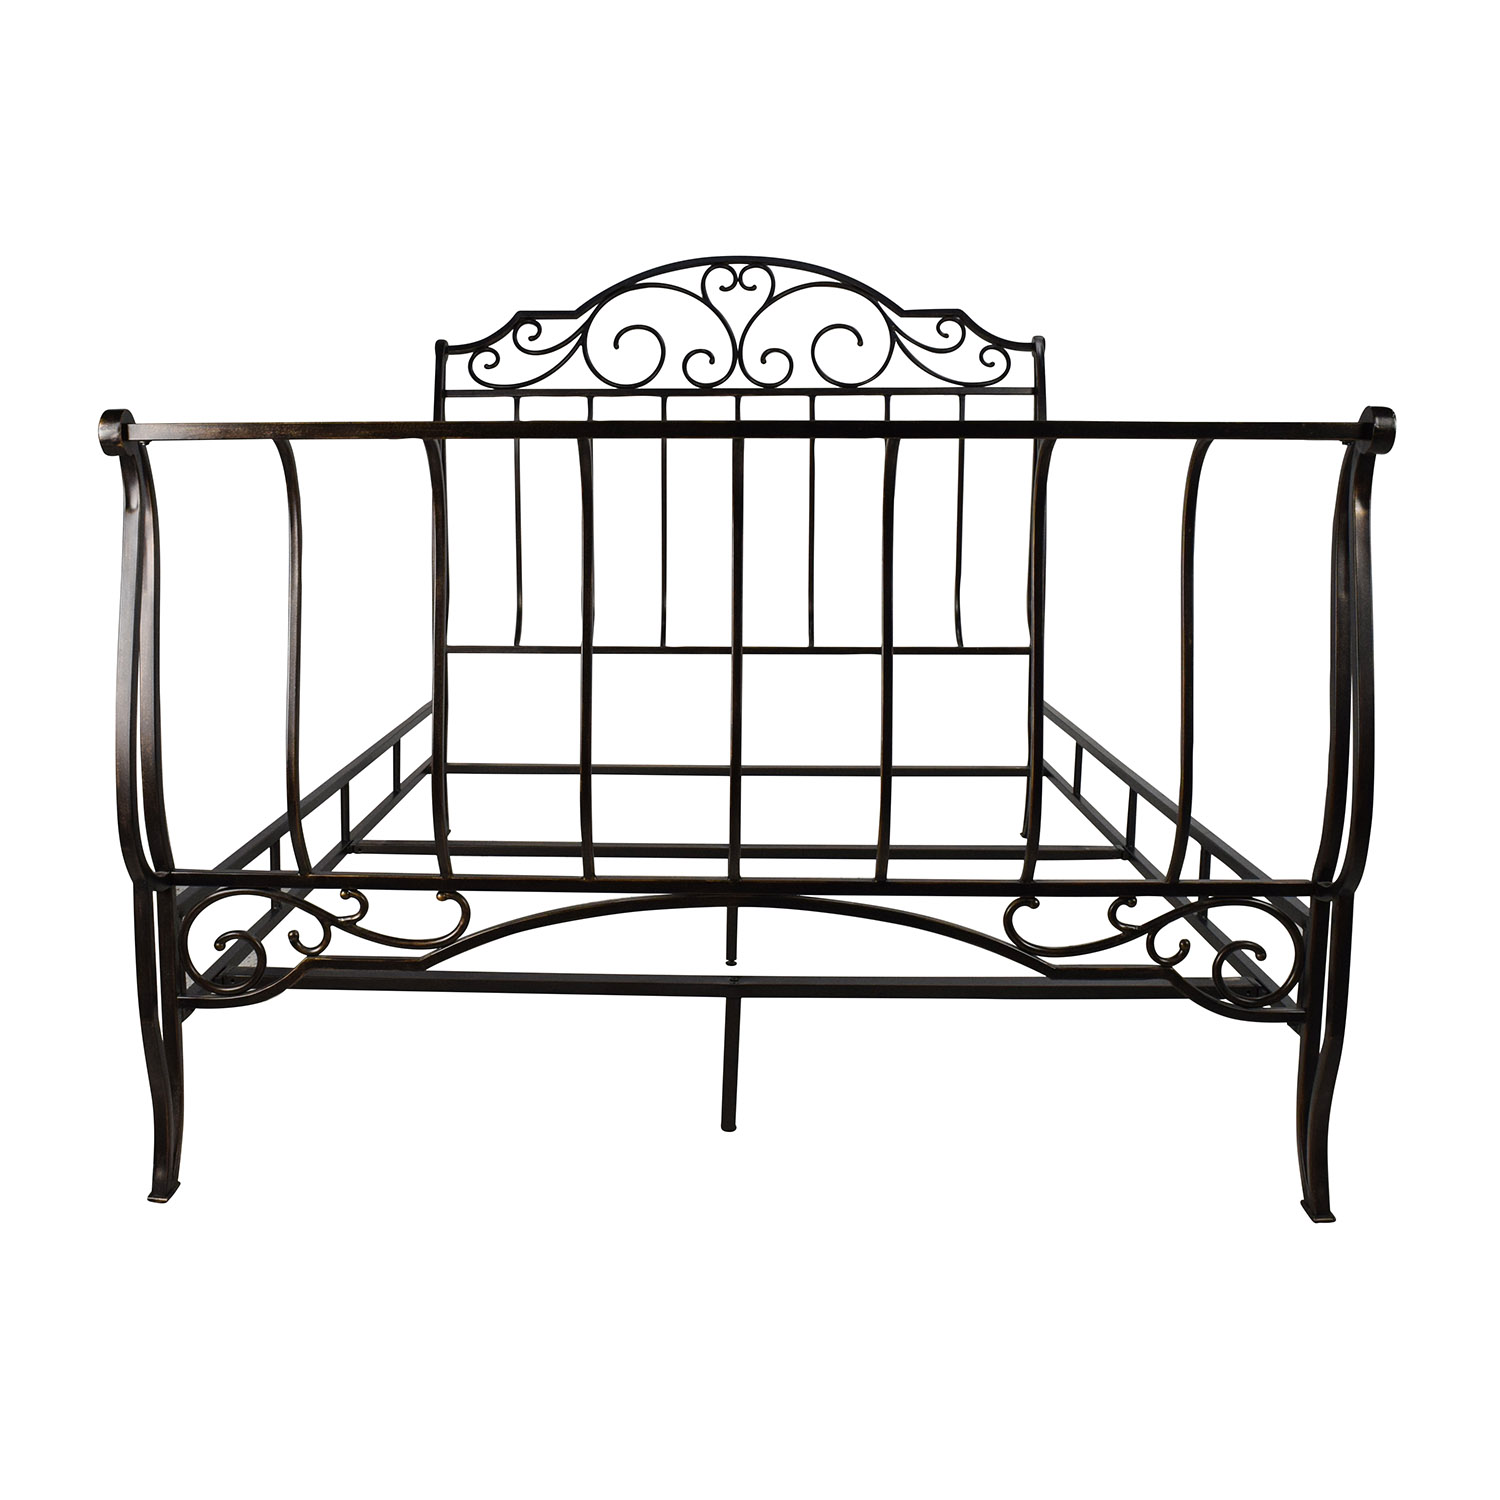 Tribeca Home Tribeca Home Bronze Metal Full Size Bed Frame on sale